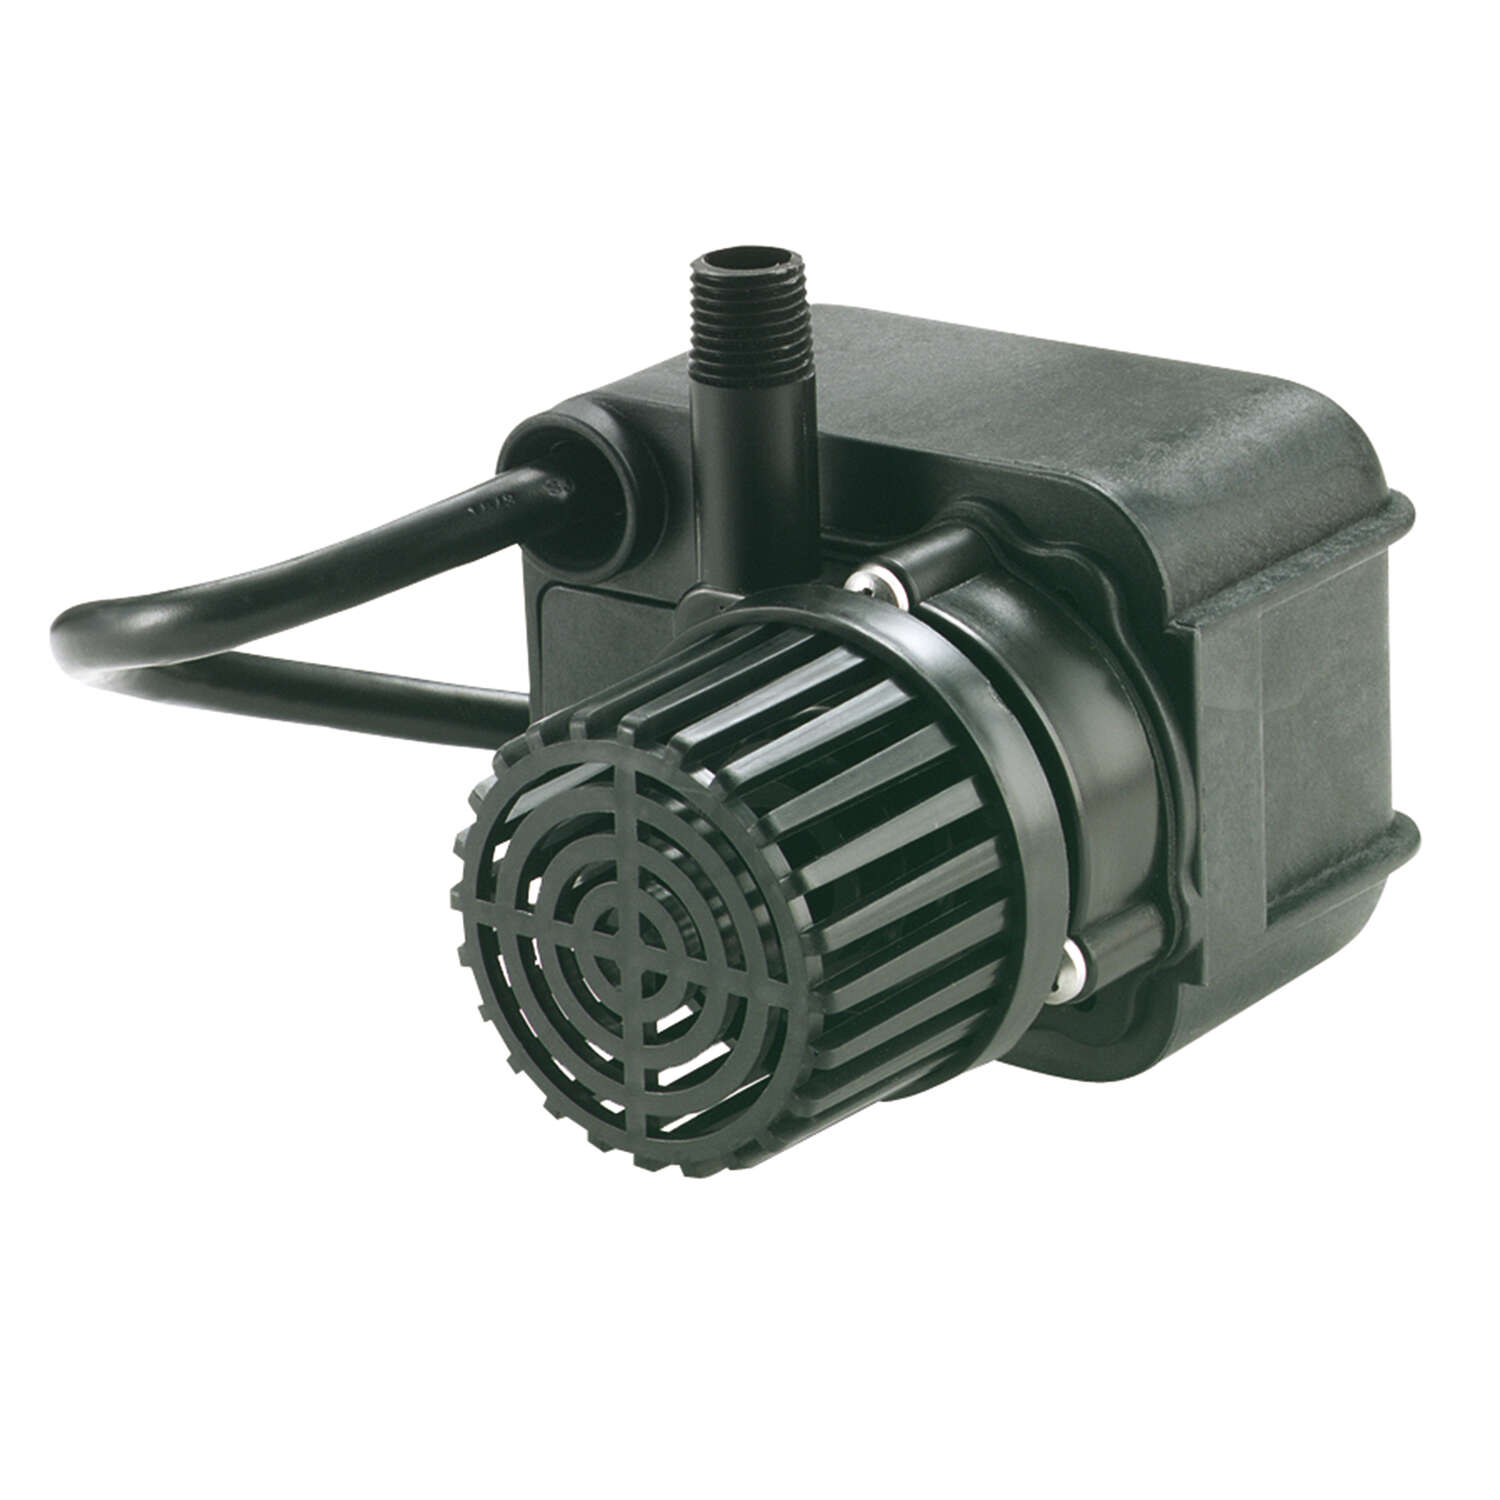 Little Giant  1/125 hp 170 gph Thermoplastic  Direct Drive Pond Pump